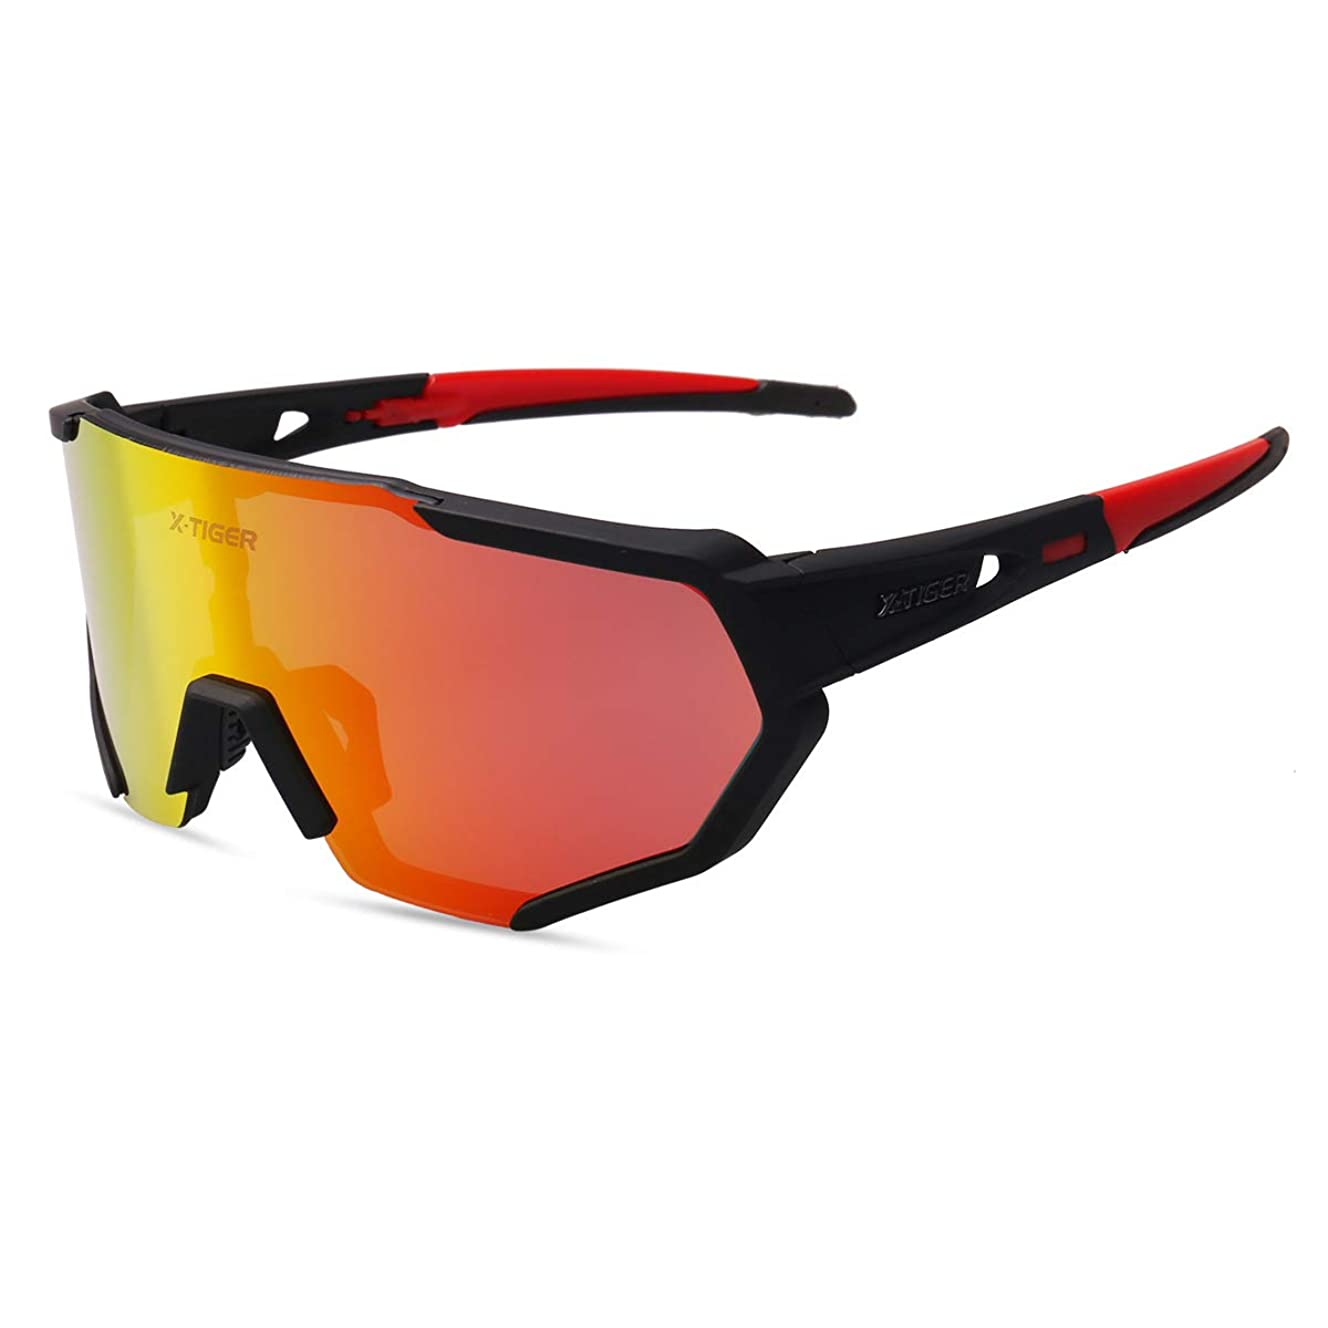 X-TIGER Polarized Sports Sunglasses with 3 Interchangeable Lenses,Mens & Womens Cycling Glasses UV400 Protection,Baseball Running Fishing Golf Driving Sunglasses-9 Colours Available pgp7379988